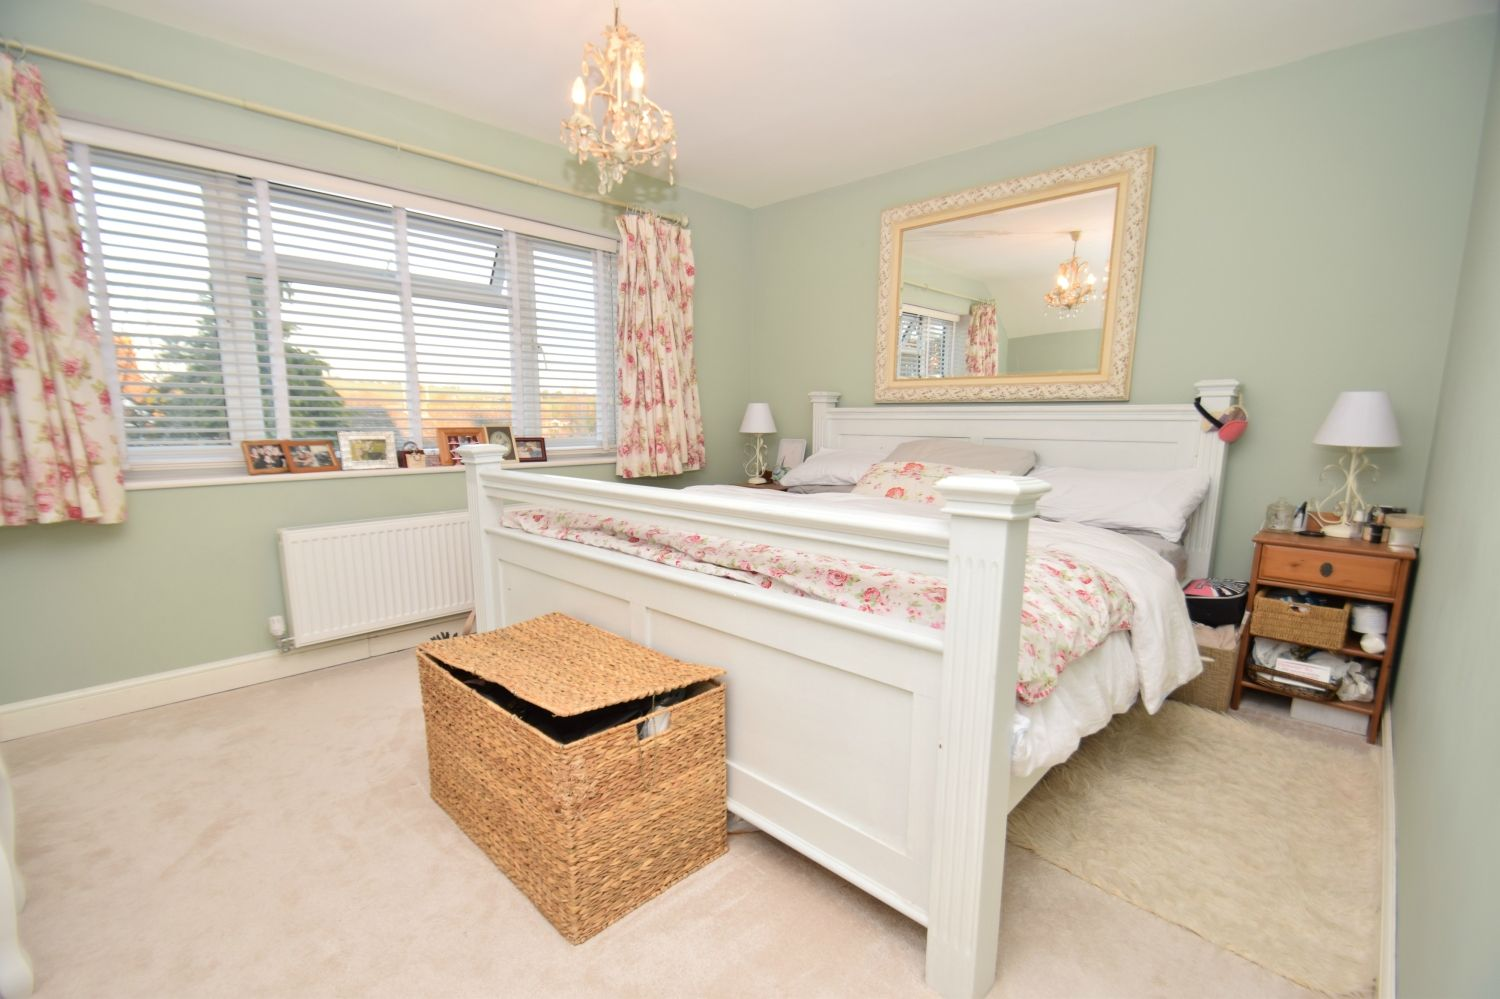 4 bed semi-detached for sale in Upland Grove, Bromsgrove, B61 17